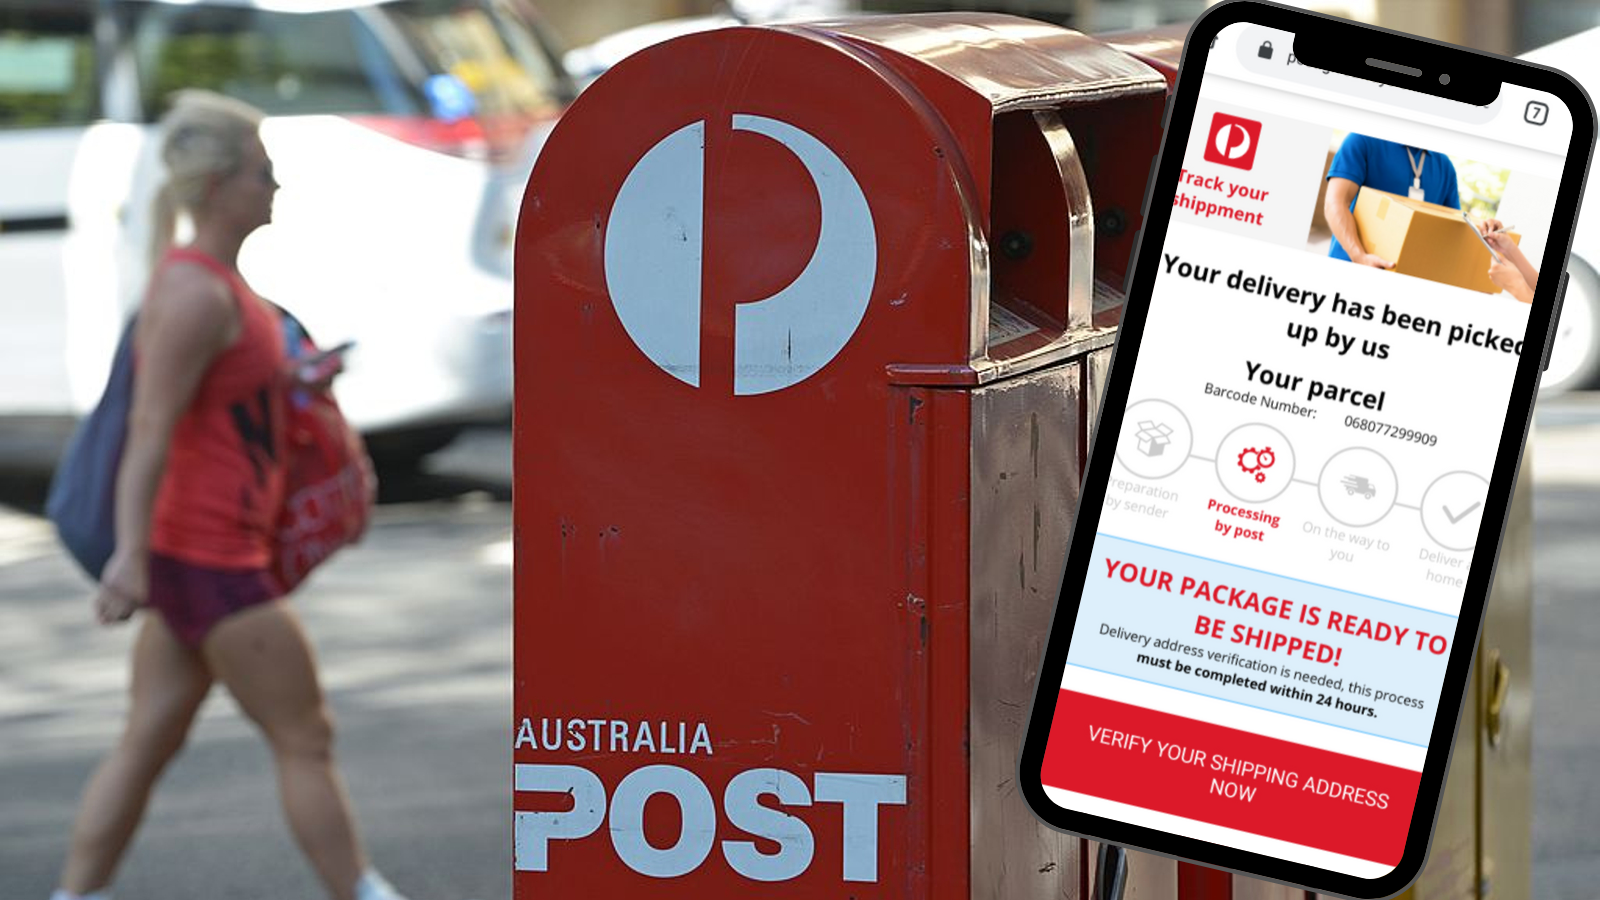 'Unverified': Australia Post warns of fresh text scam targeting Aussies